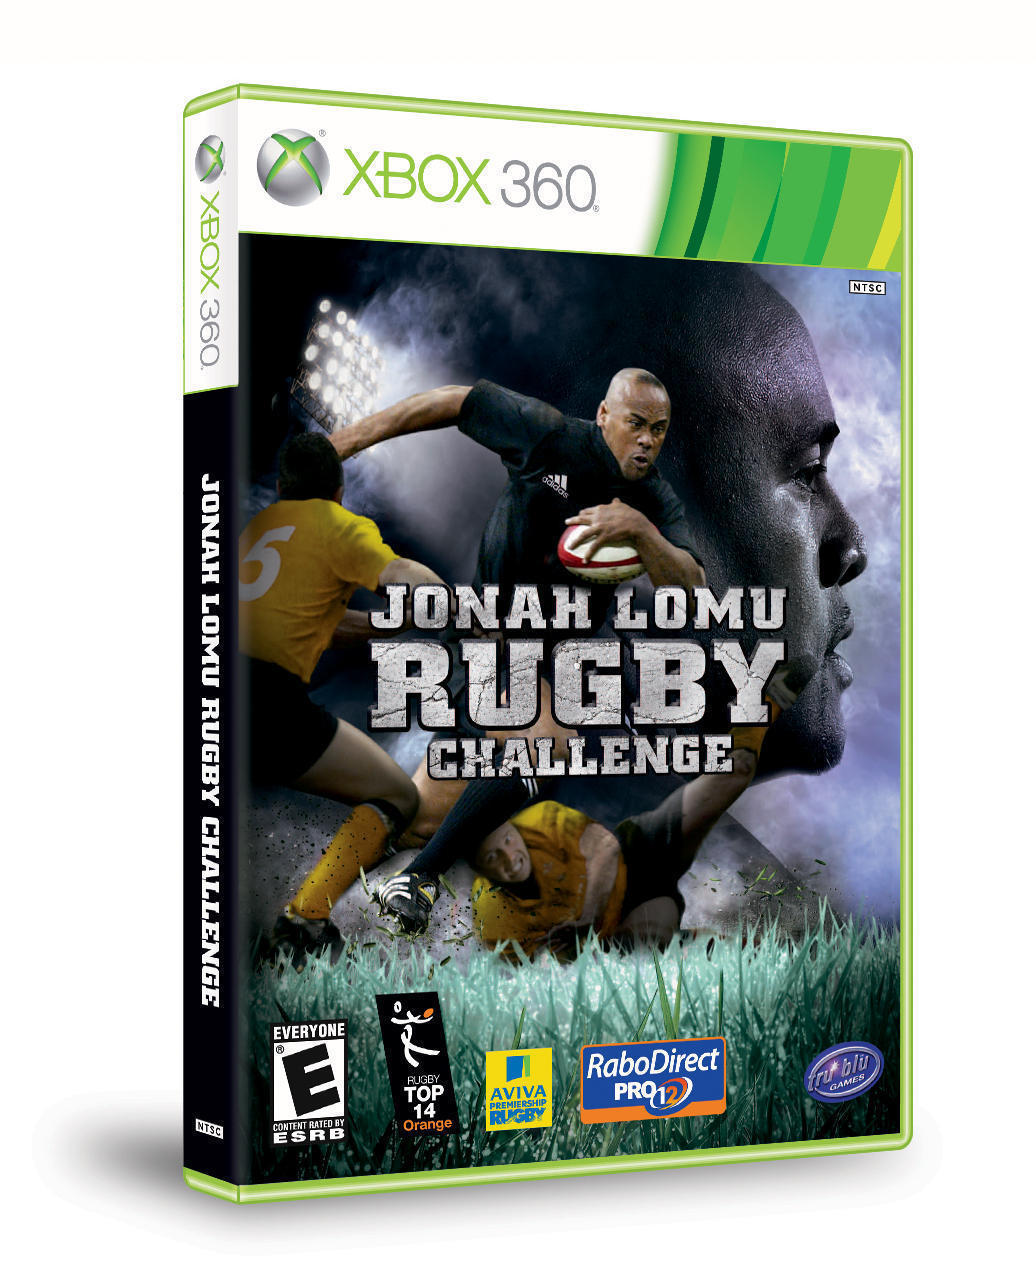 Jonah Lomu Rugby Challenge Delivers Enhanced Game Play